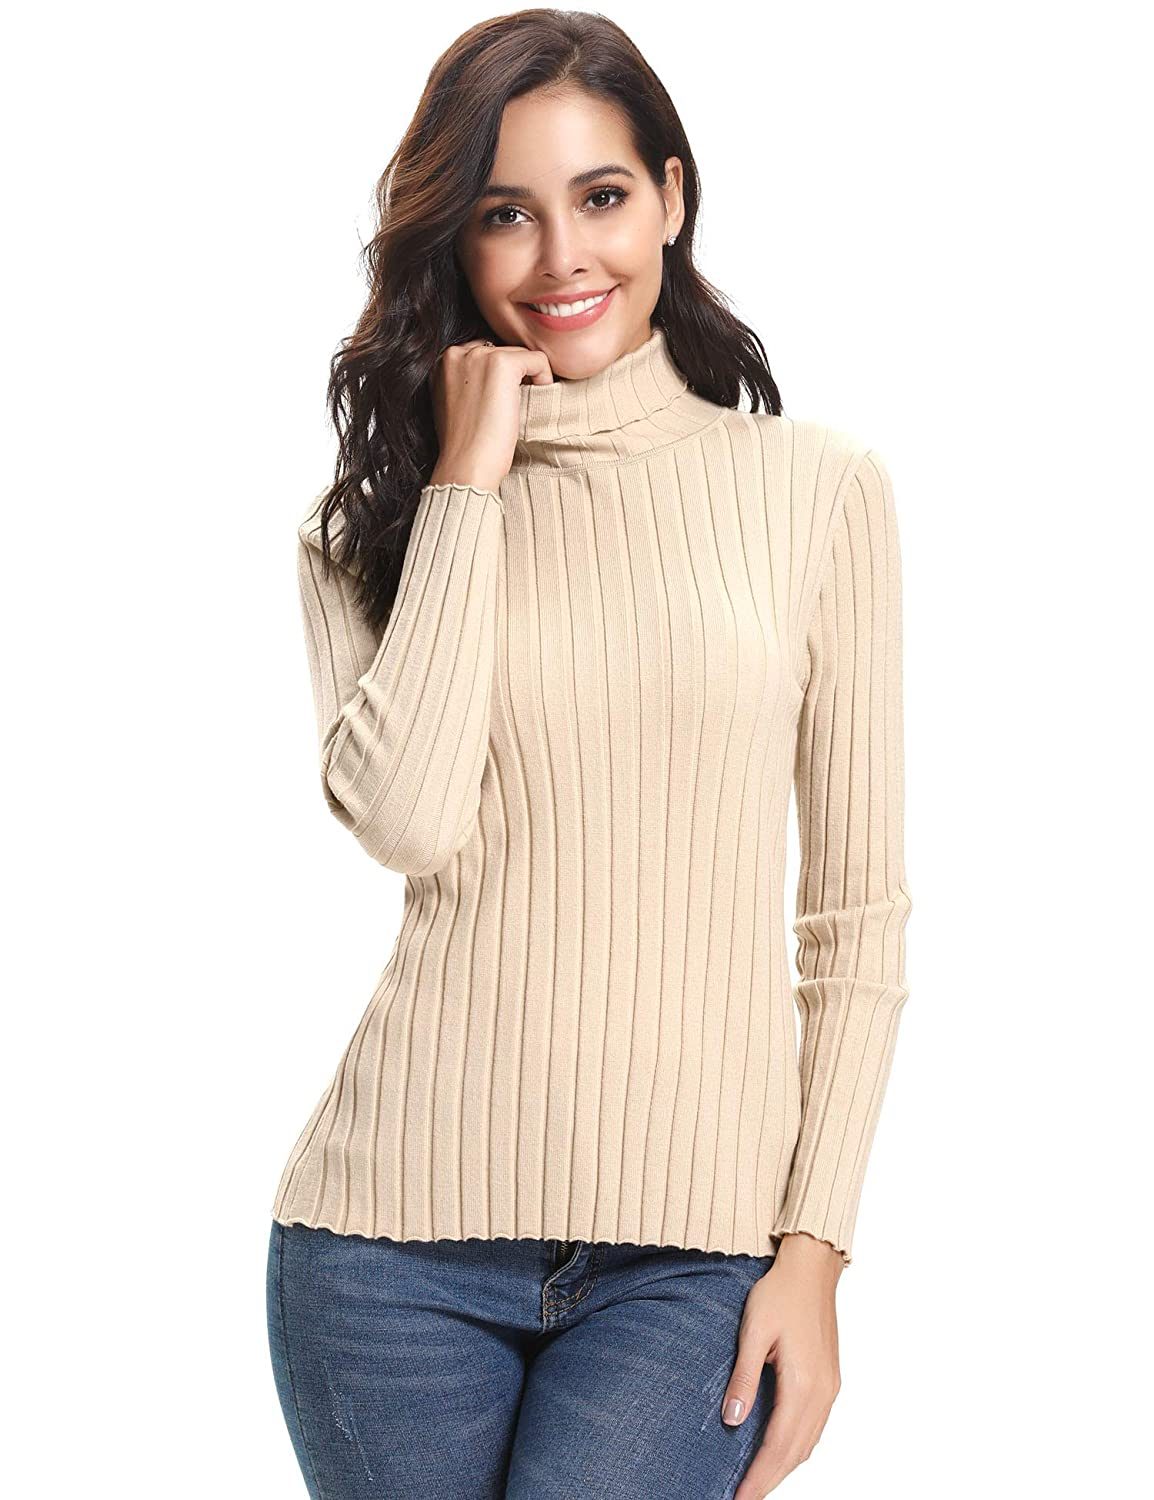 7fb4cd1f370 Abollria Women s Long Sleeve Solid Lightweight Soft Knit Mock Turtleneck  Sweater Tops Pullover at Amazon Women s Clothing store